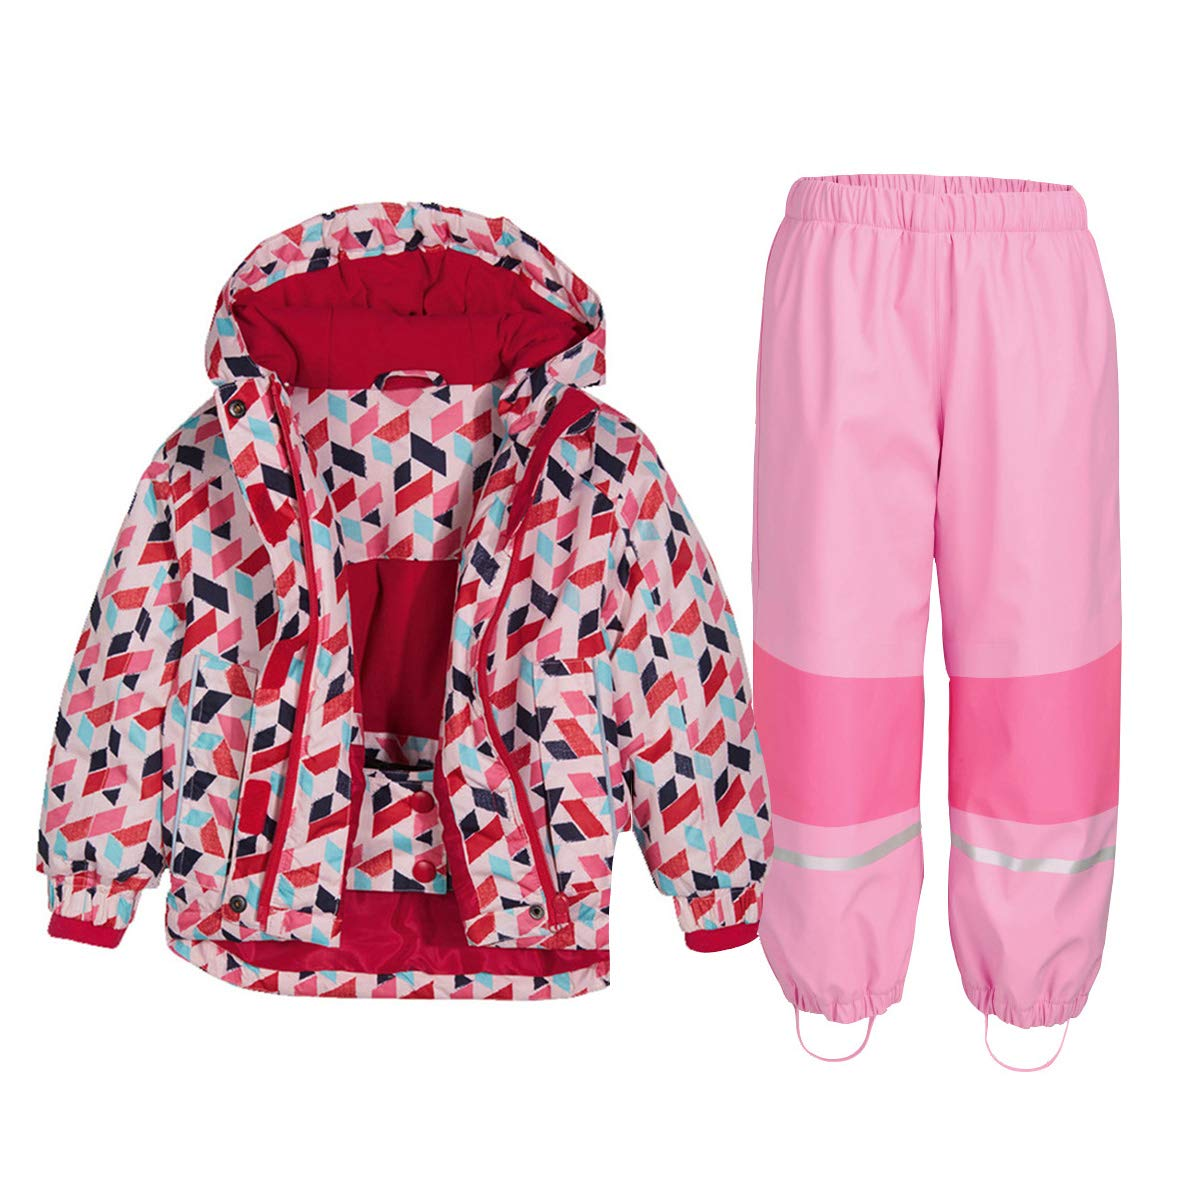 c055257d8dcf Snowsuits   Online Shopping for Clothing